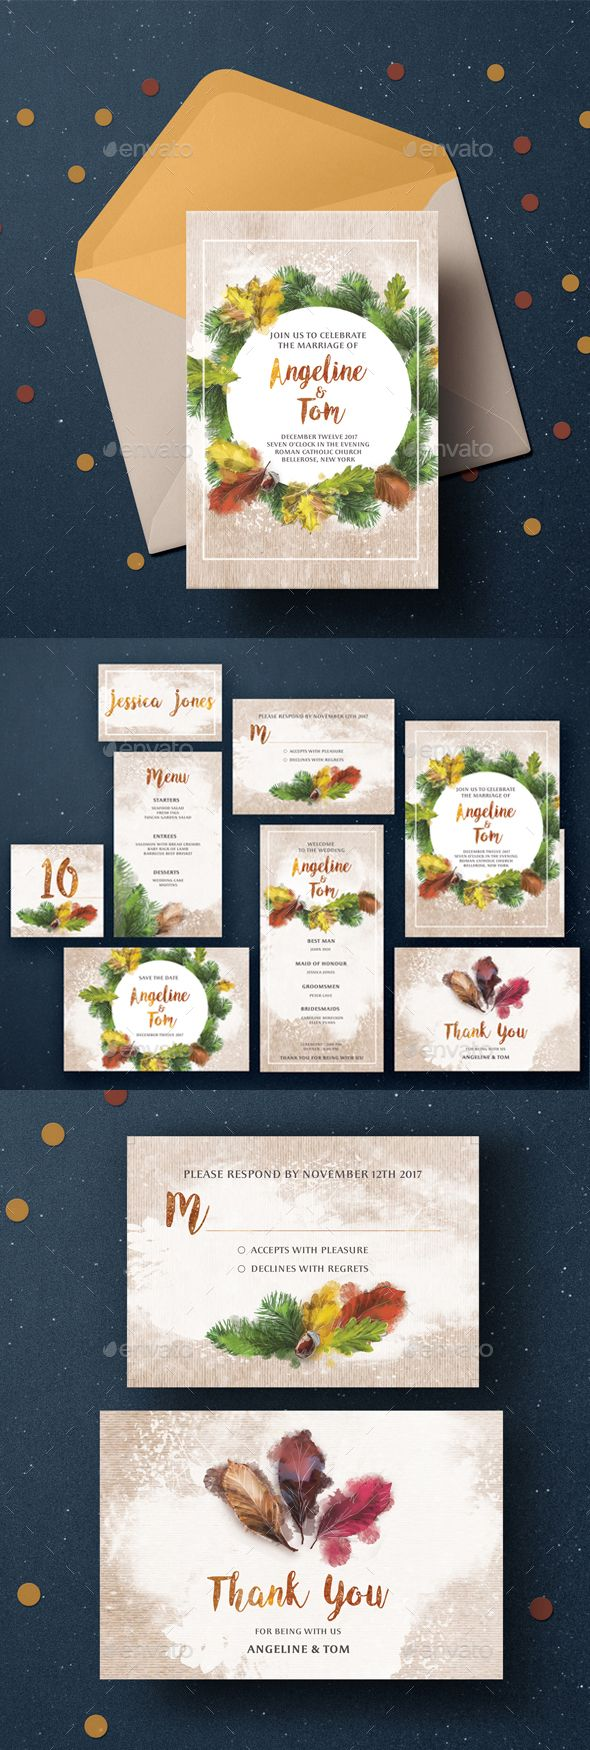 7 Best Birthday Invitation Templates Images On Pinterest Bridal